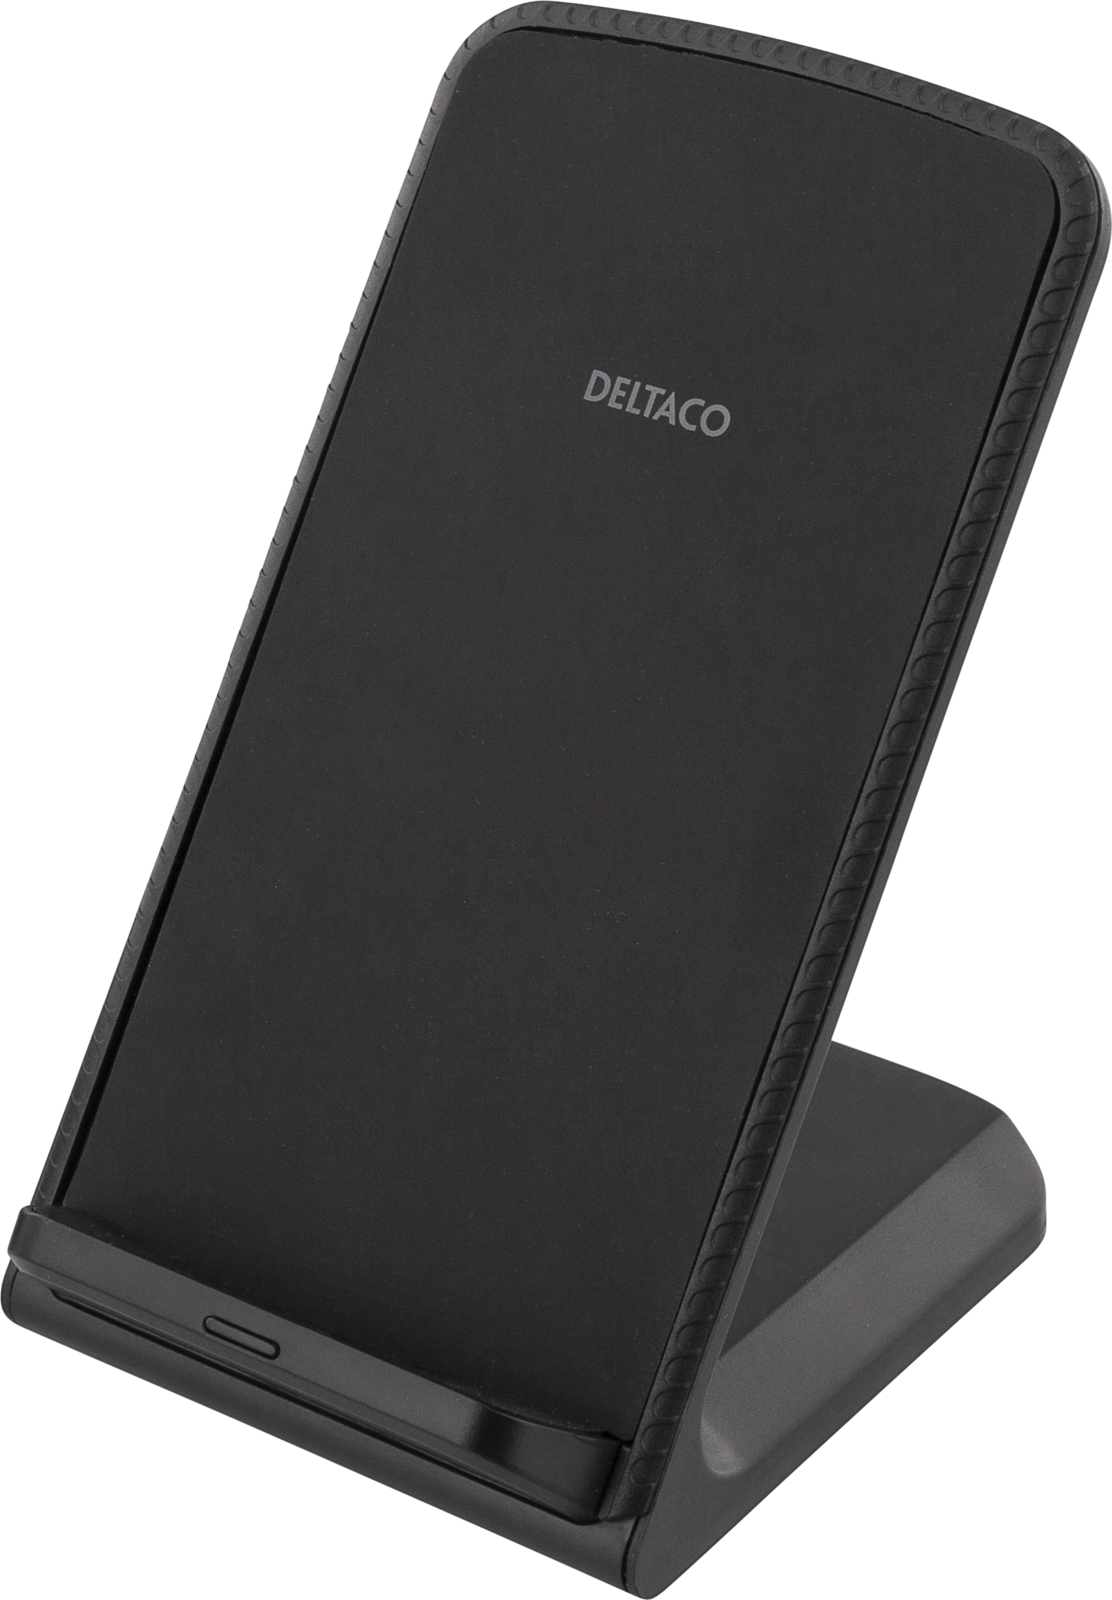 Deltaco Quick Charger Angled Stand 10W S33-5